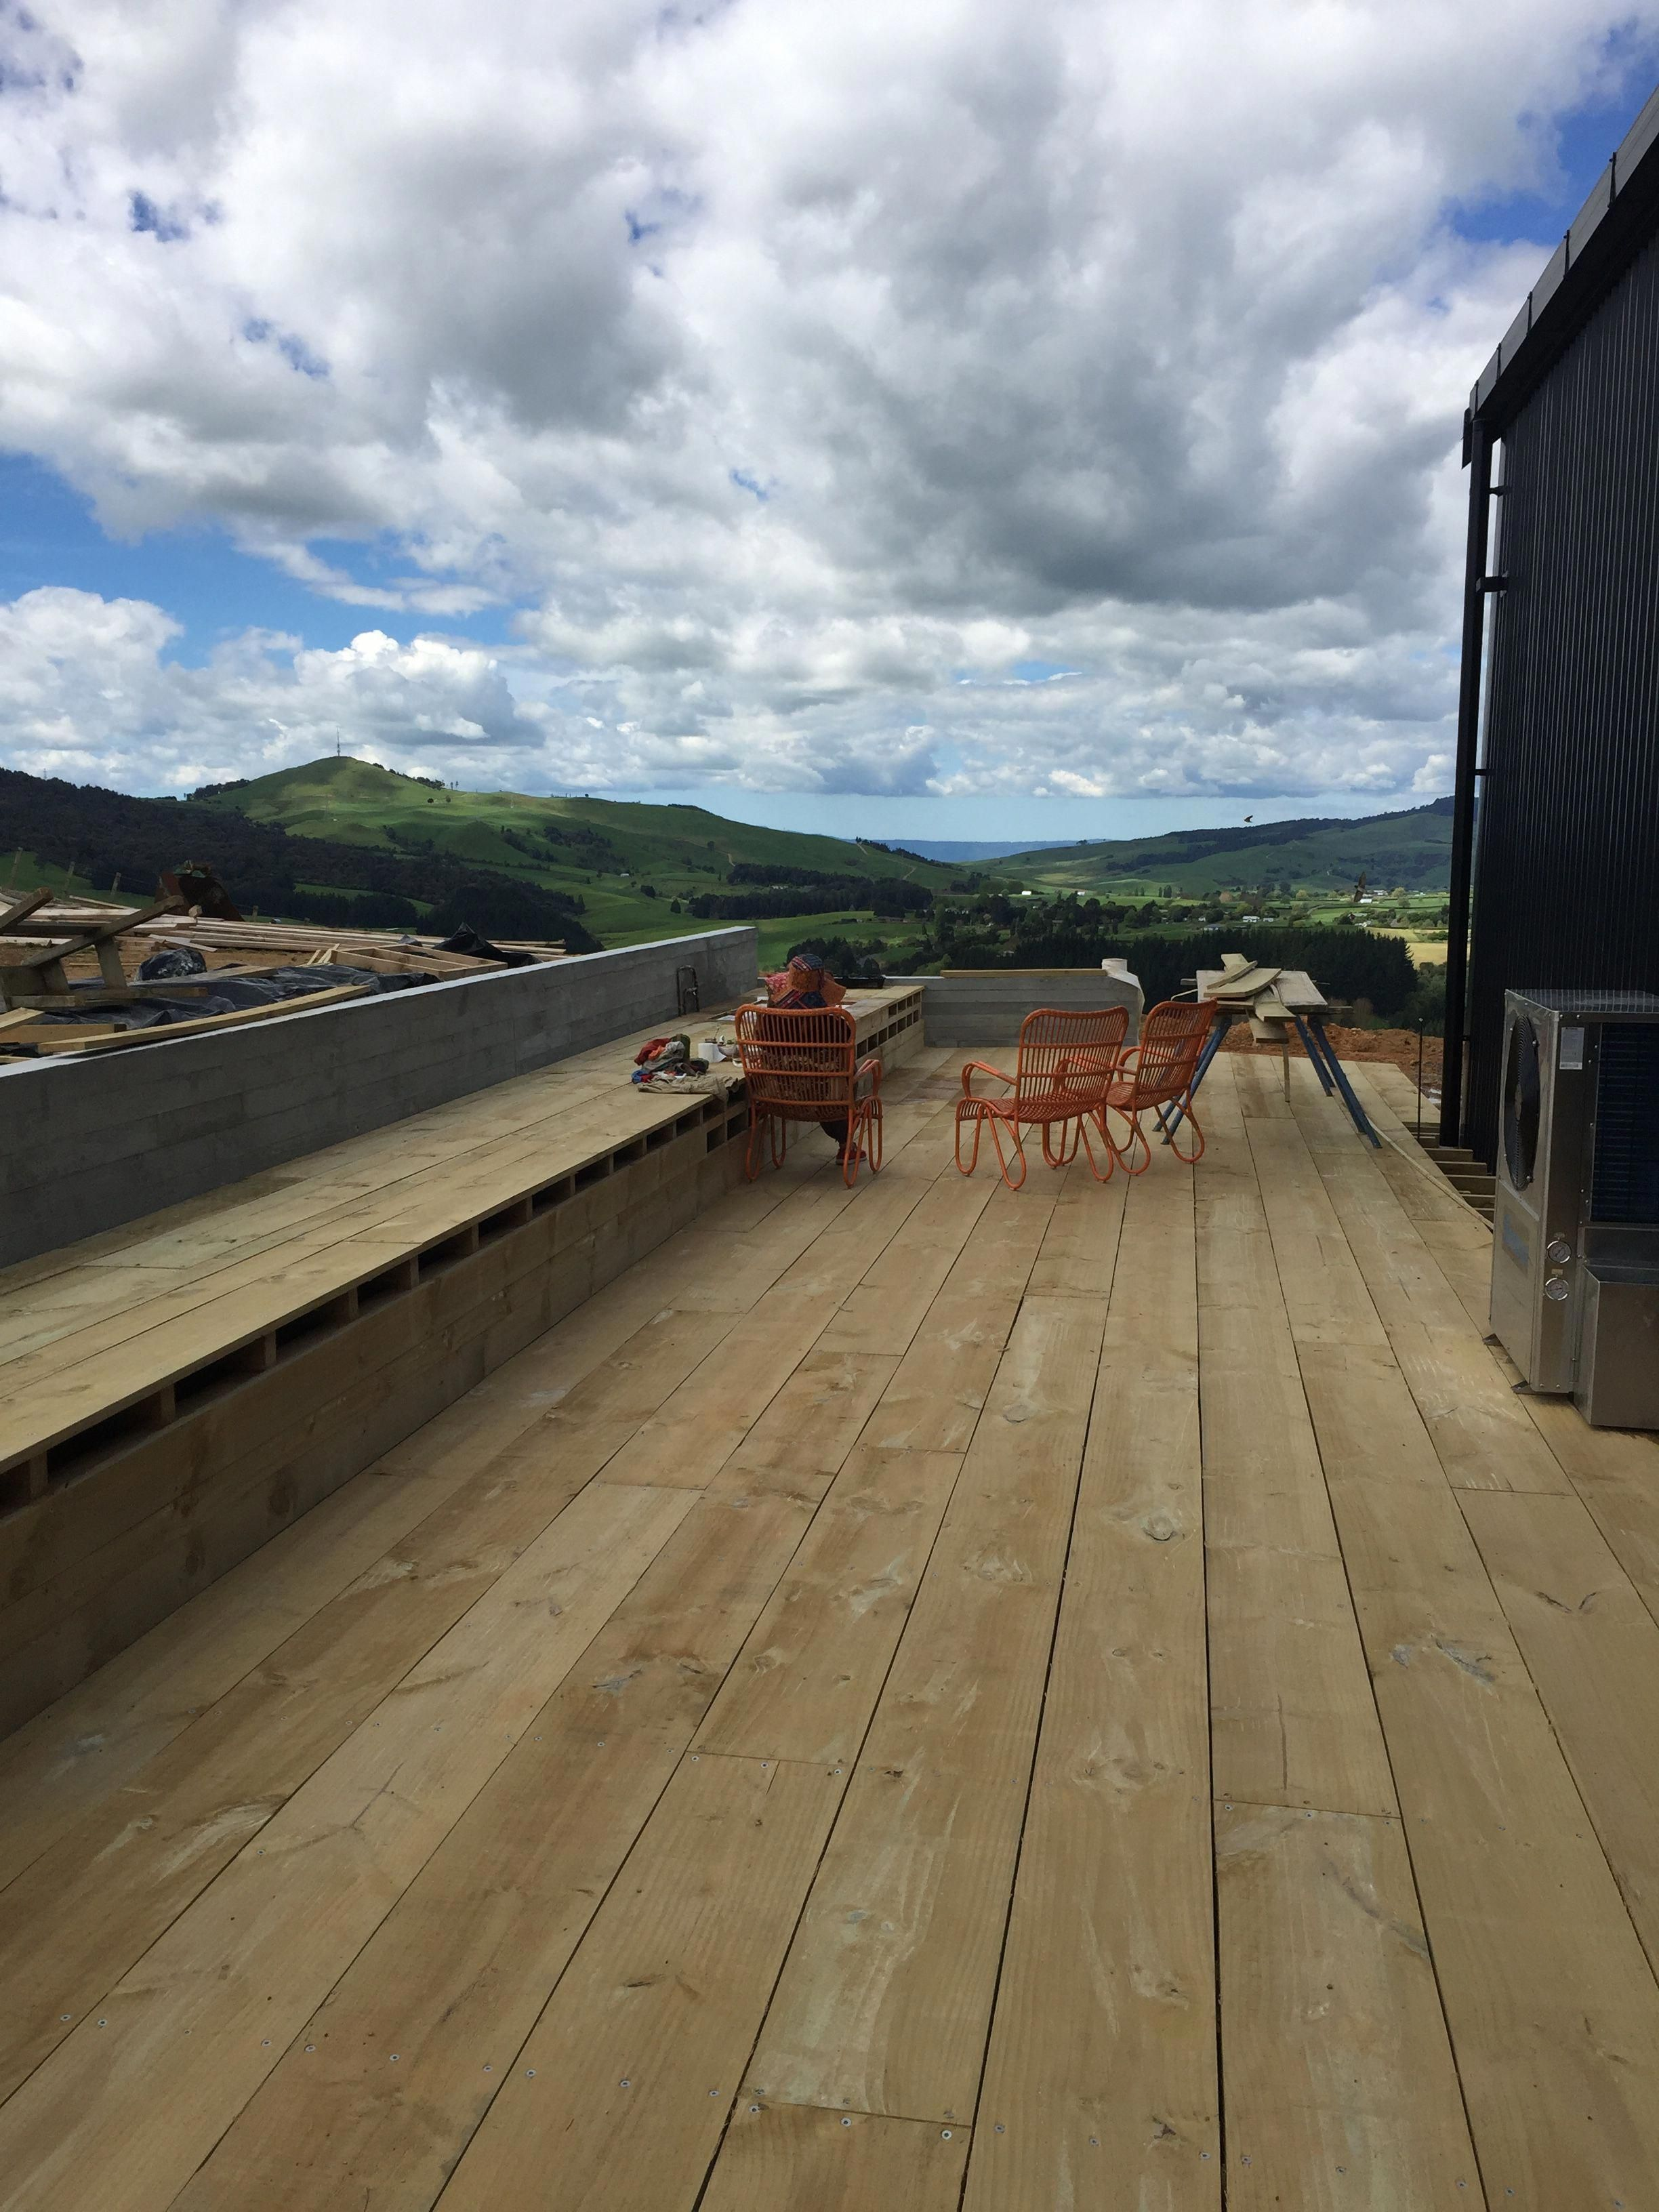 300mm Wise Timber Planks Used For Our Decking Look Great Sips Builder In Nz We Have Built Homes For Building A Deck Building Design Plan Deck Construction